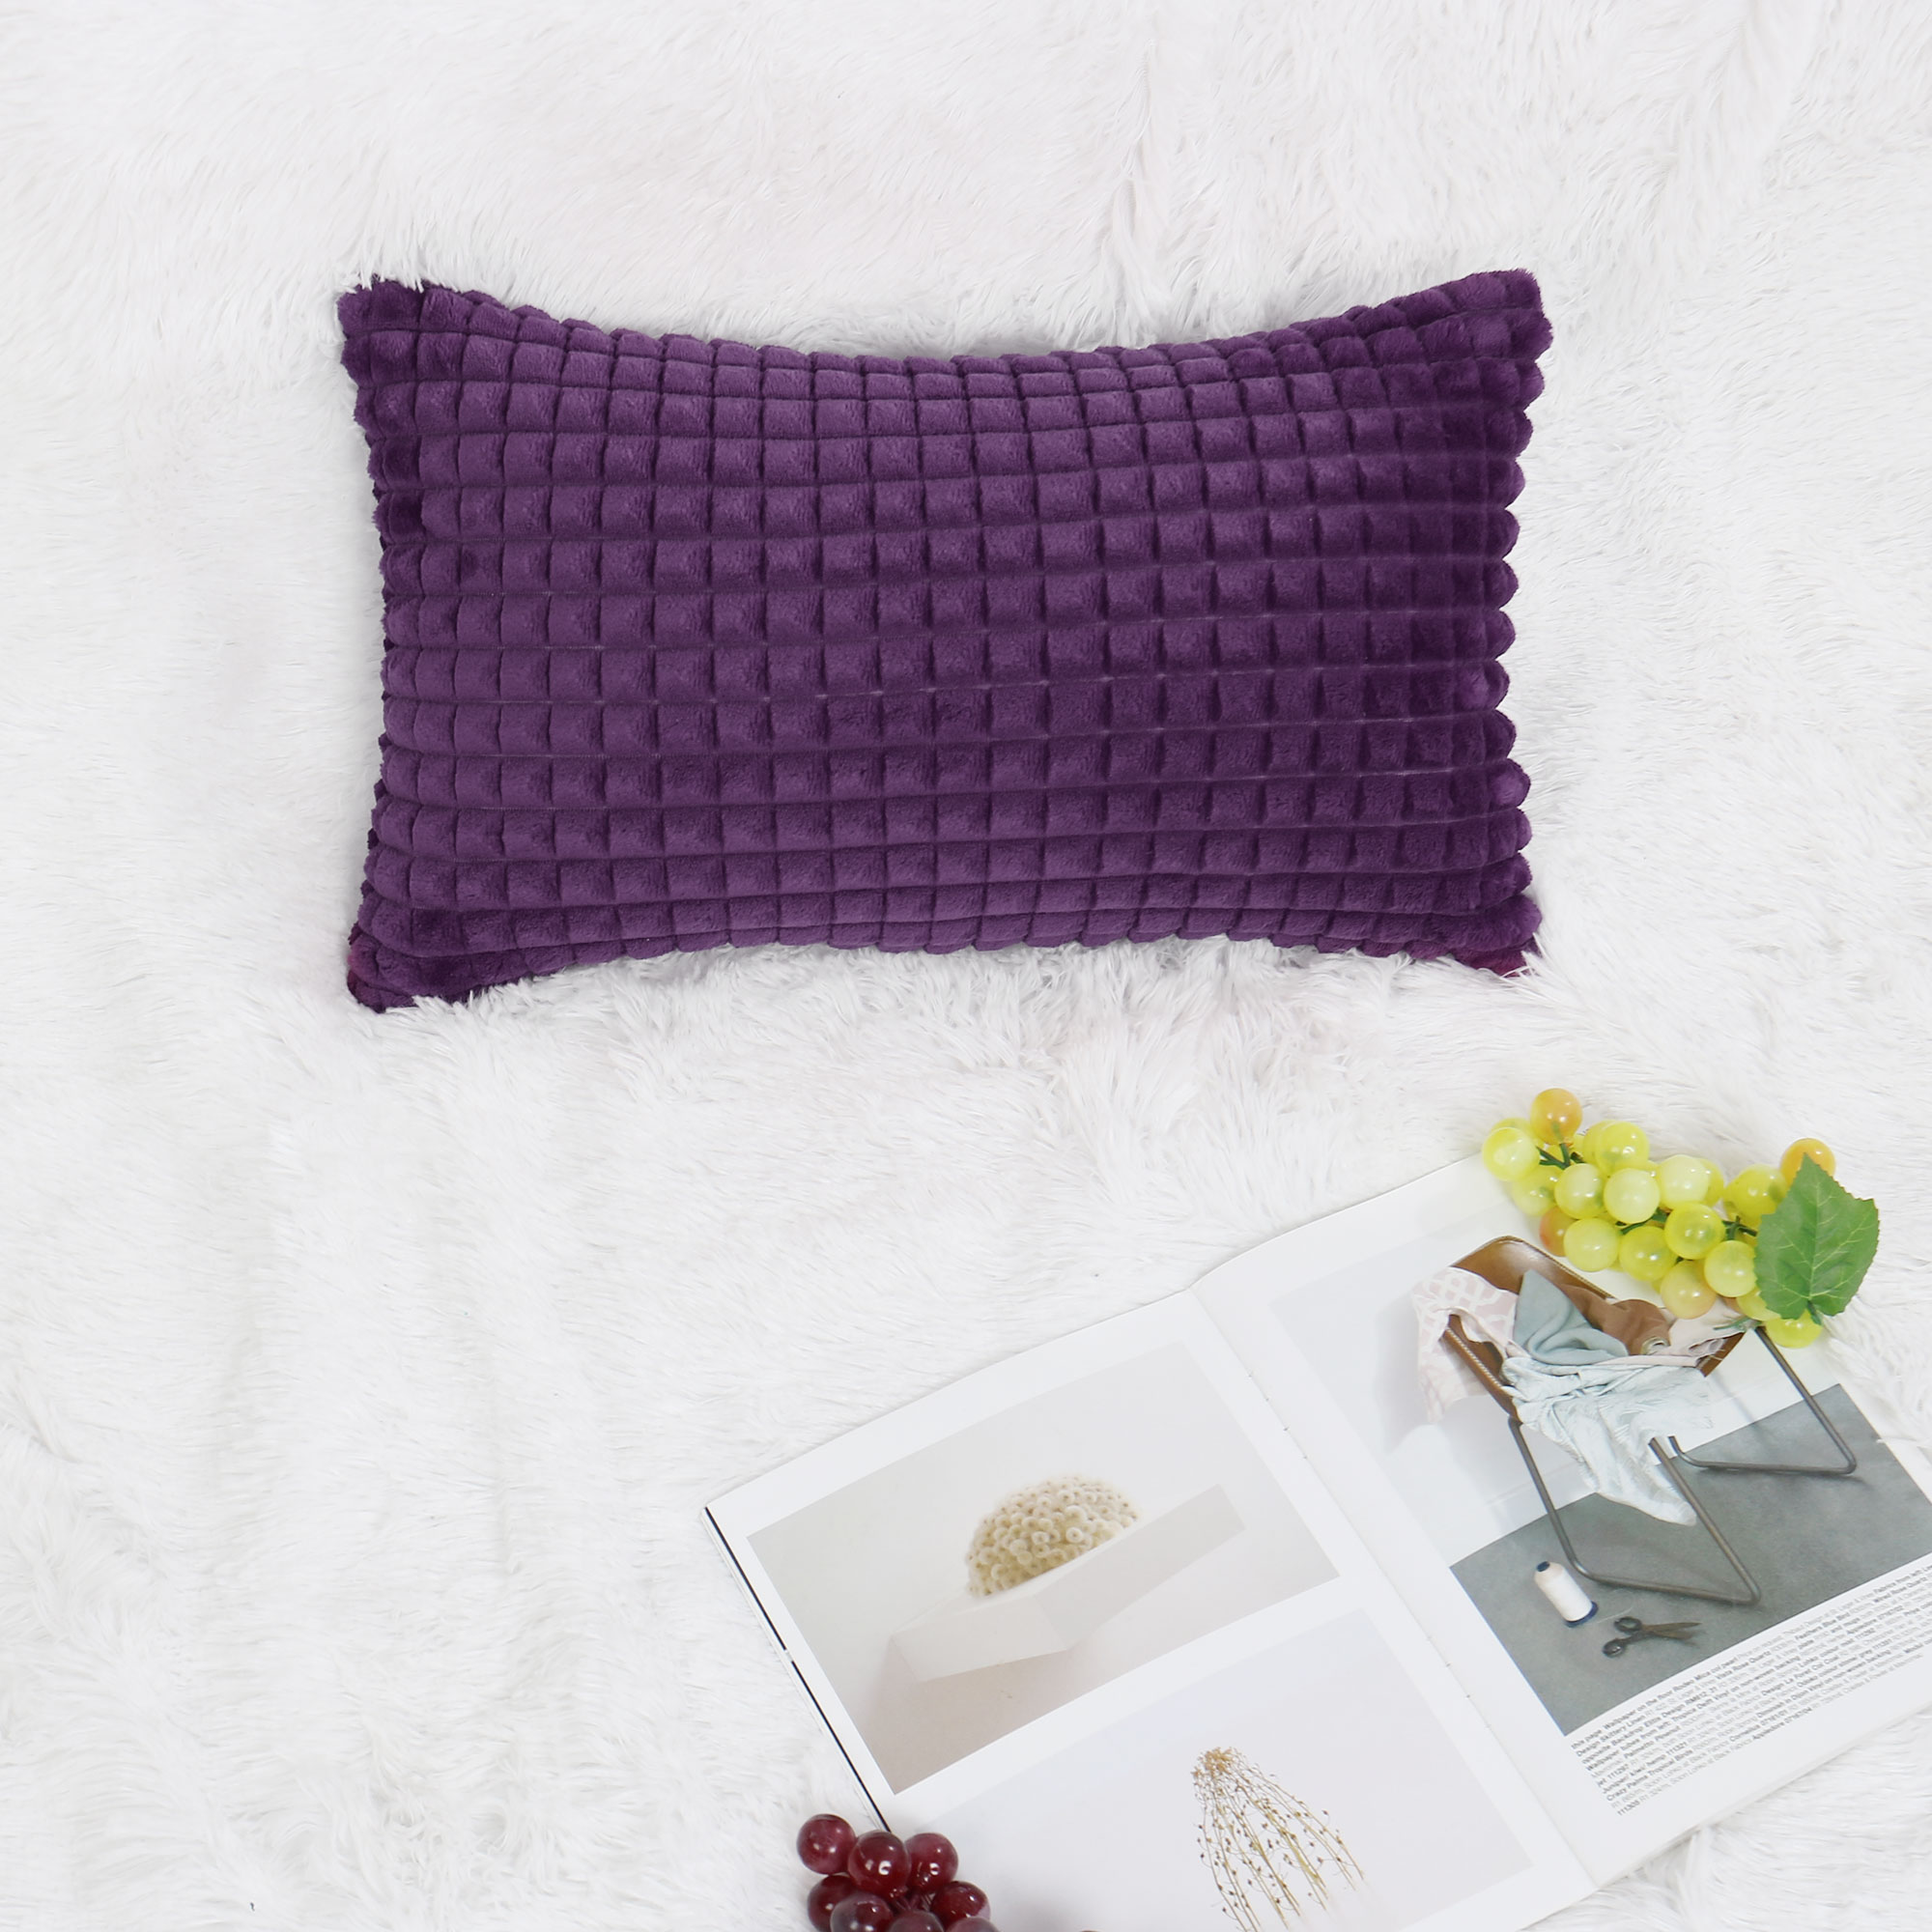 Plush Throw Pillow Case Faux Fur Cushion Cover Deluxe Home Decorative for Sofa Couch Bed Car (12 x 20 Inch 30 x 50cm, Pu - image 1 de 8